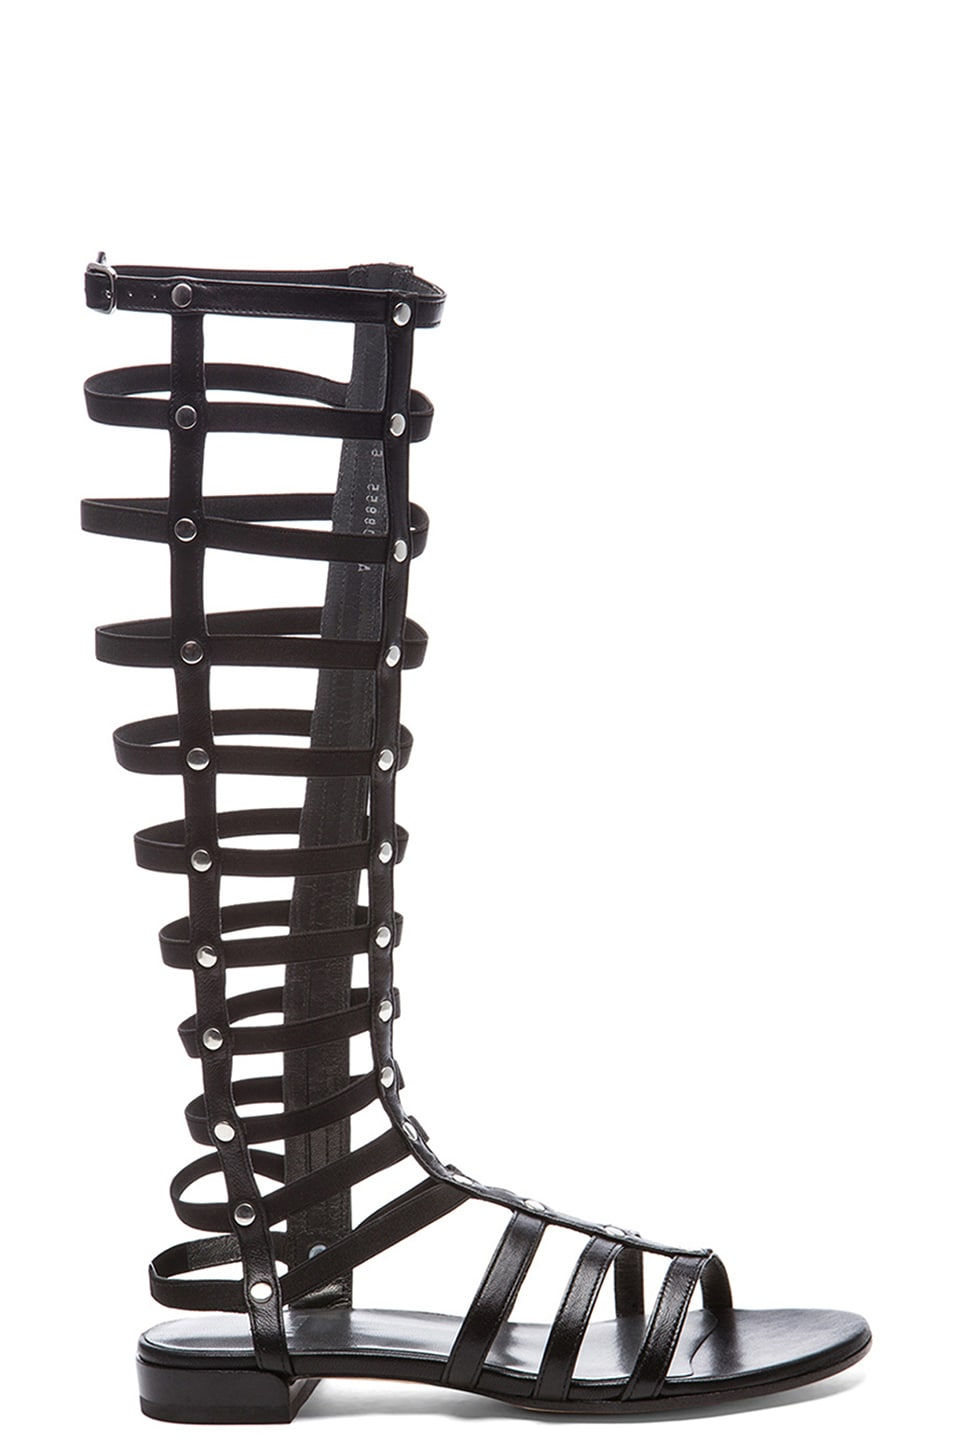 Image 1 of Stuart Weitzman Nappa Leather Gladiator Sandals in Black